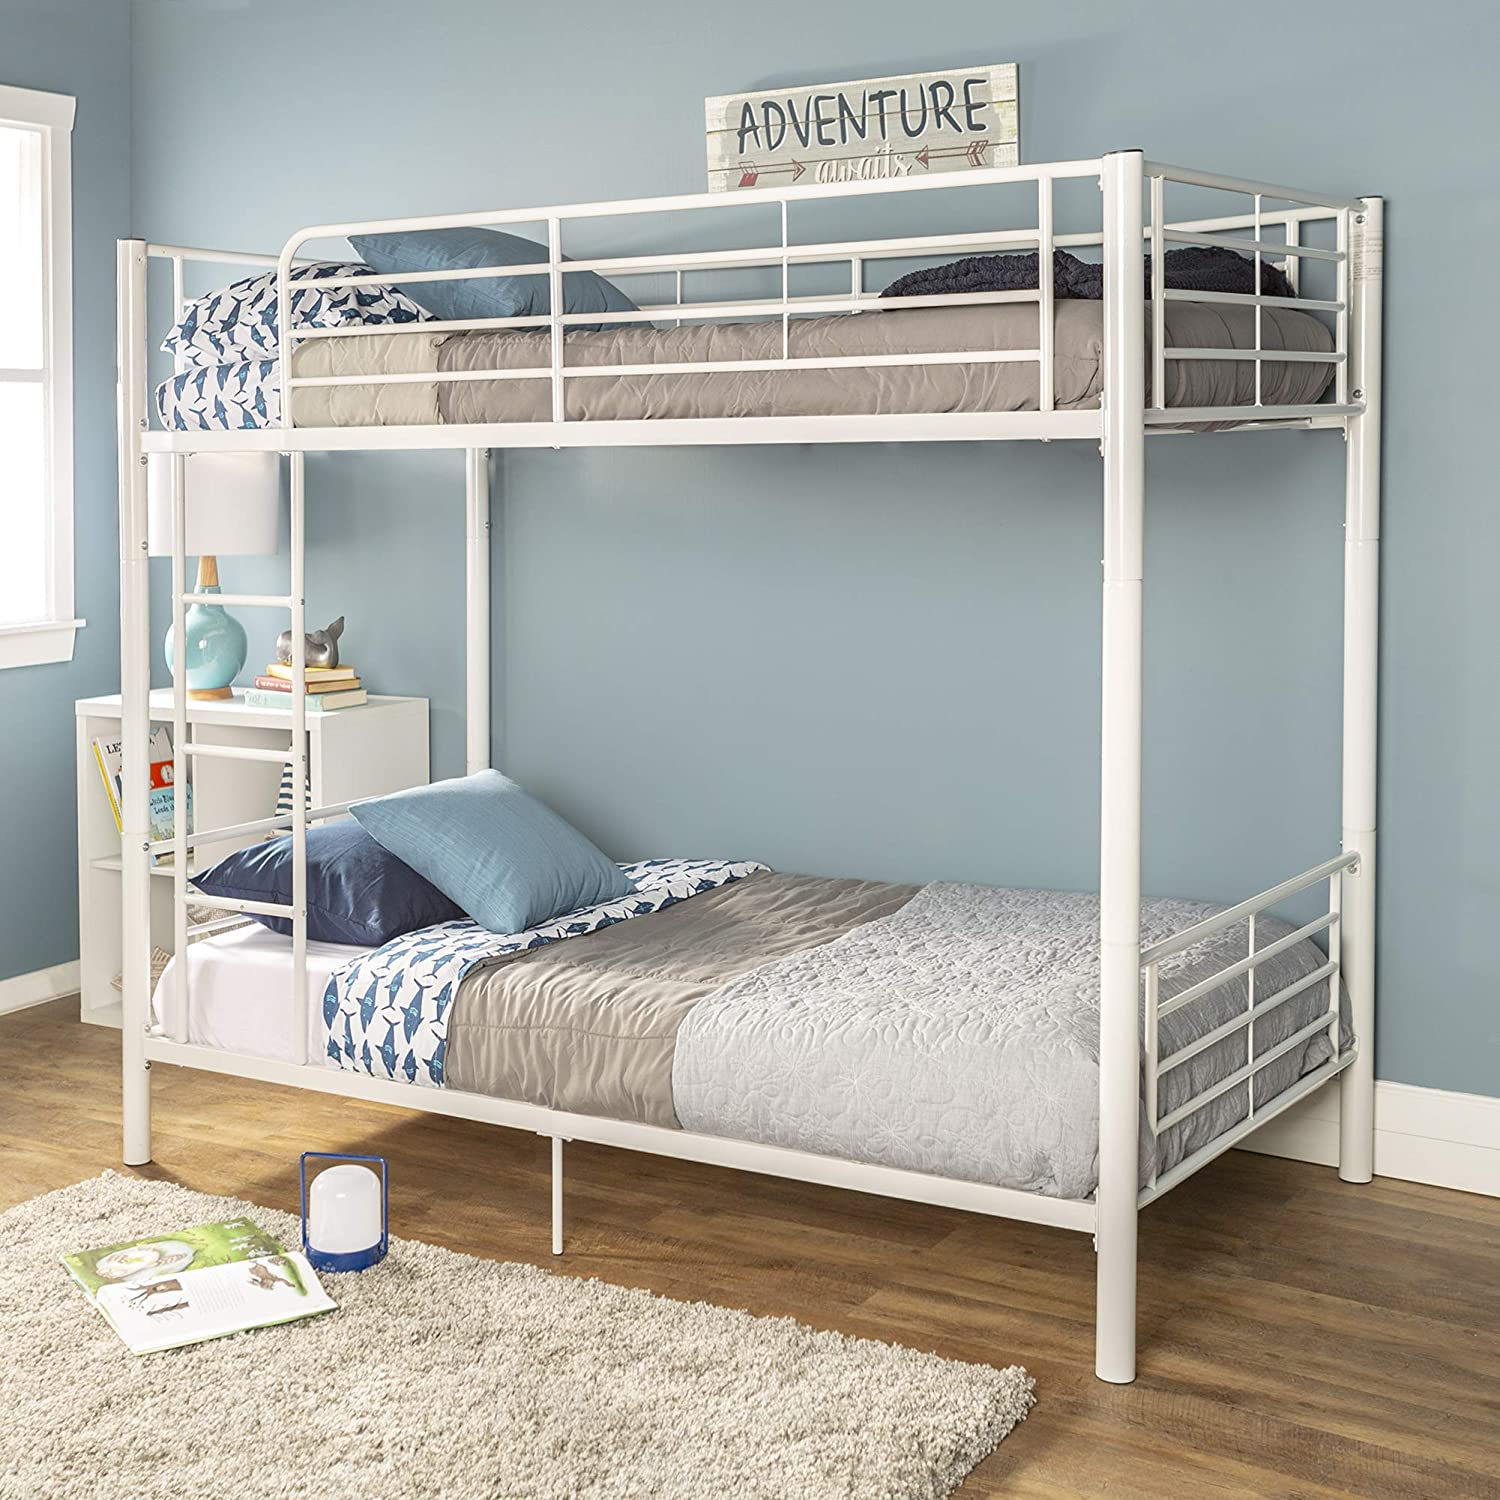 WE Furniture Modern Metal Pipe Twin Bunk Kids Bed Bedroom, Twin Over Twin, White